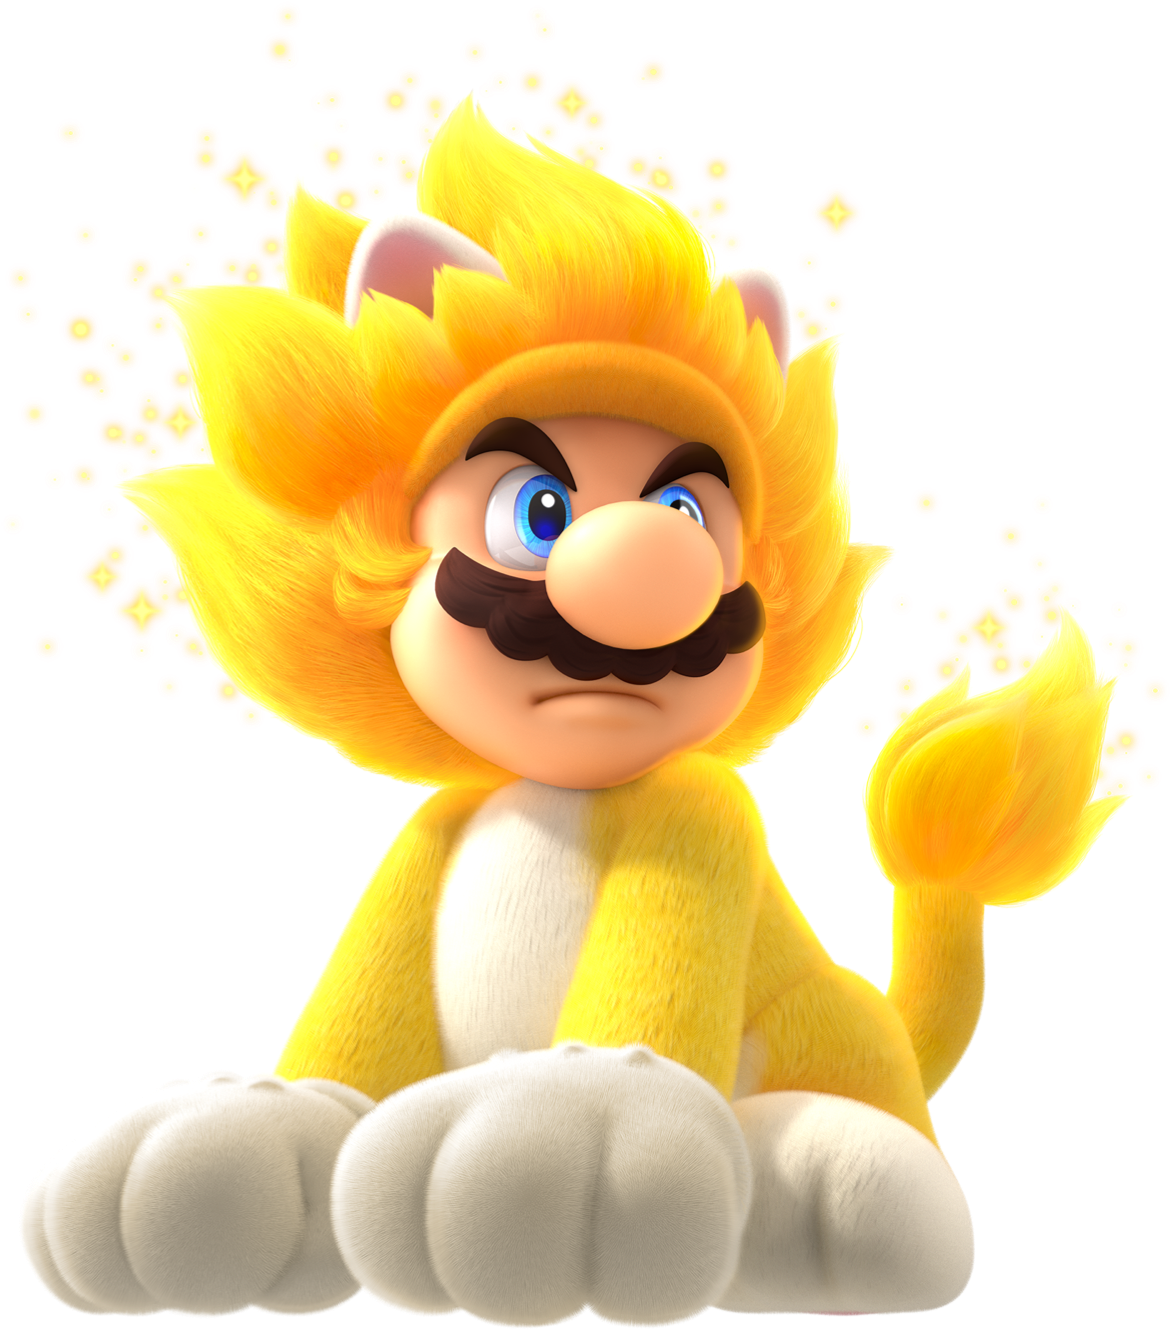 Bowser's Fury Switch Game's Trailers Preview New Bowser, Mario Forms